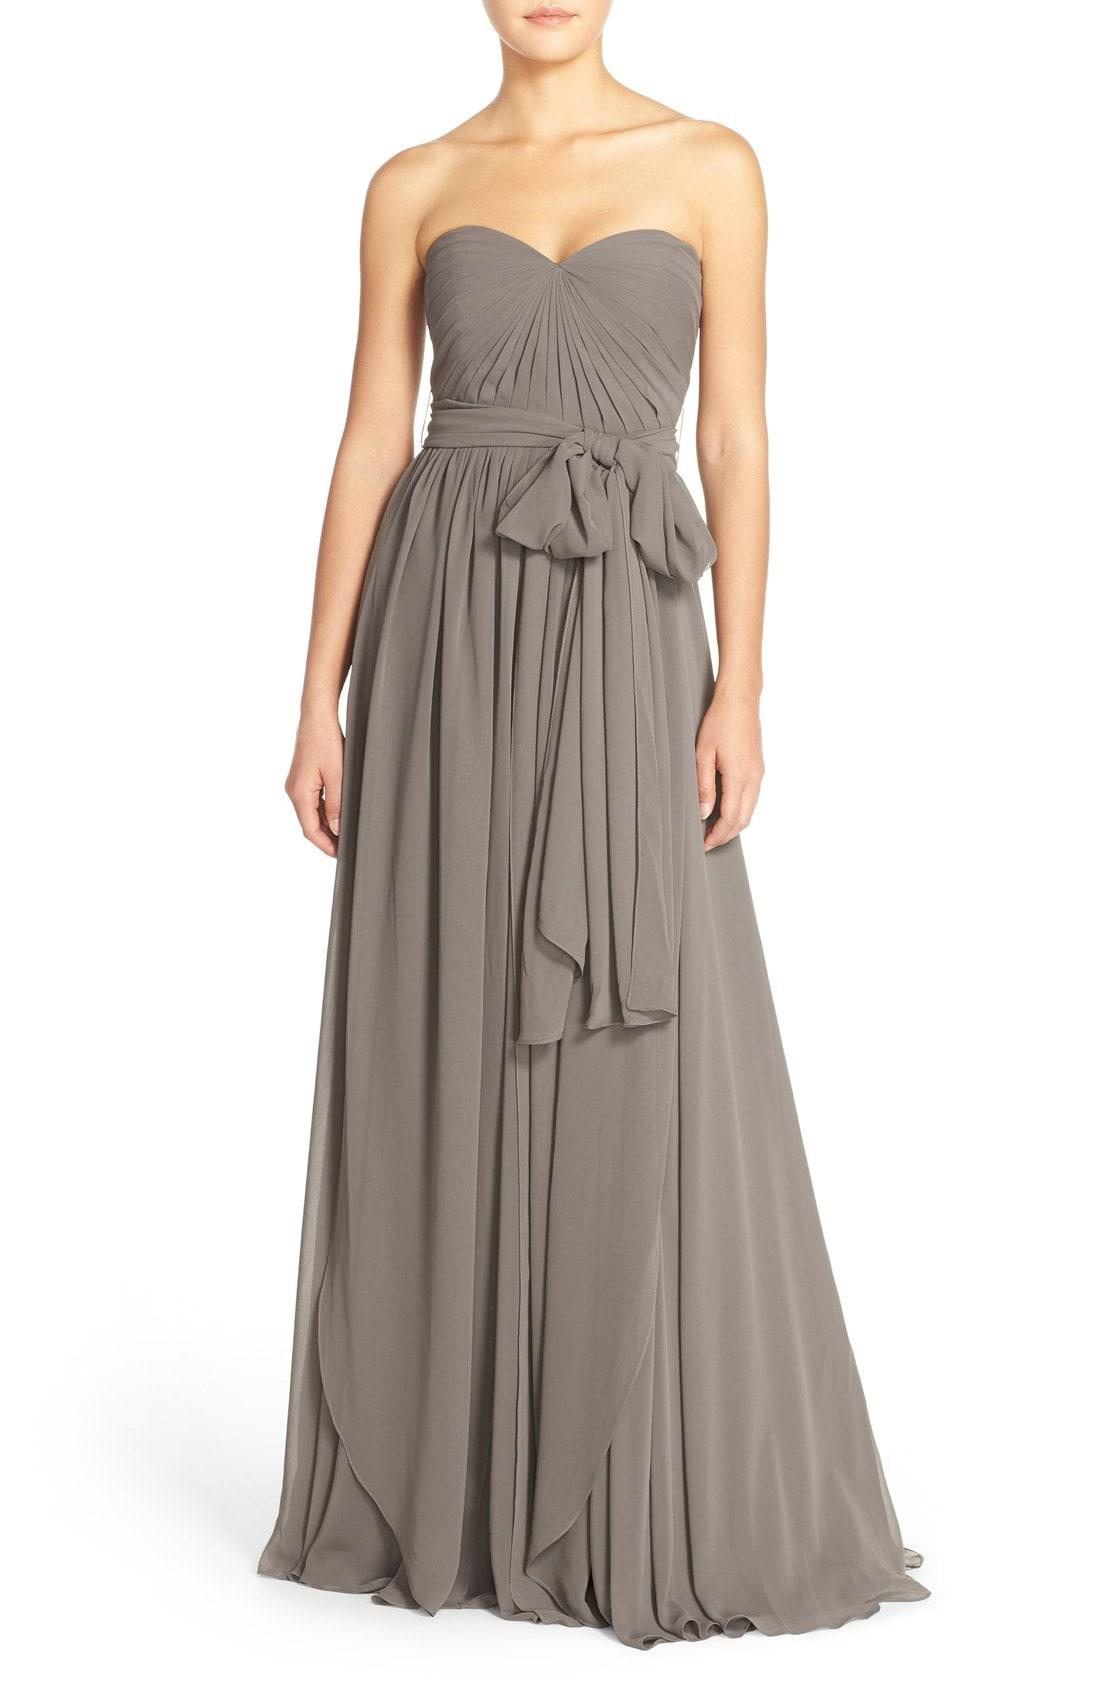 4ef37fb79d27 Jenny Yoo Mira Convertible Strapless Chiffon Gown in Gray - Lyst